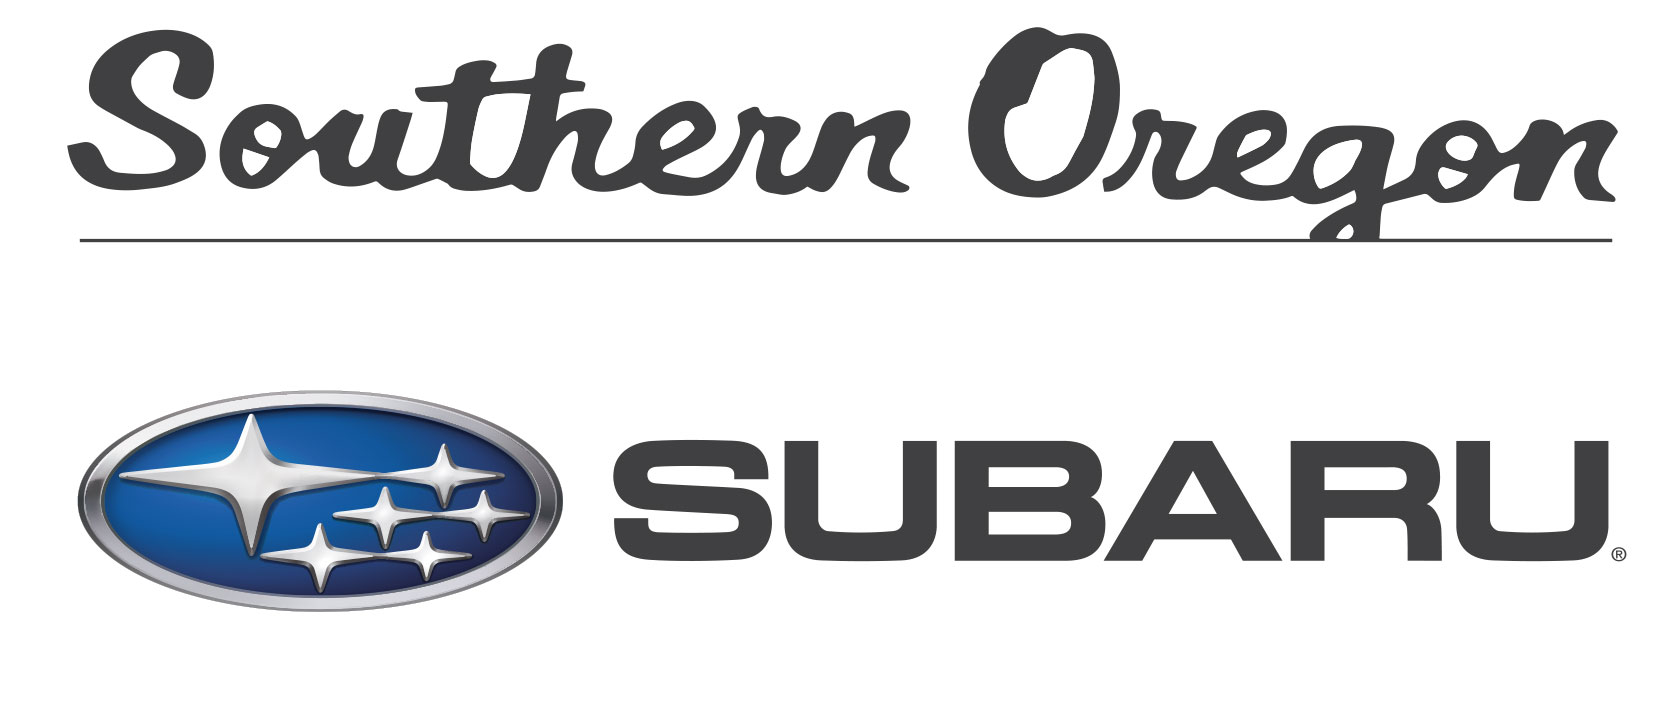 so subaru logo